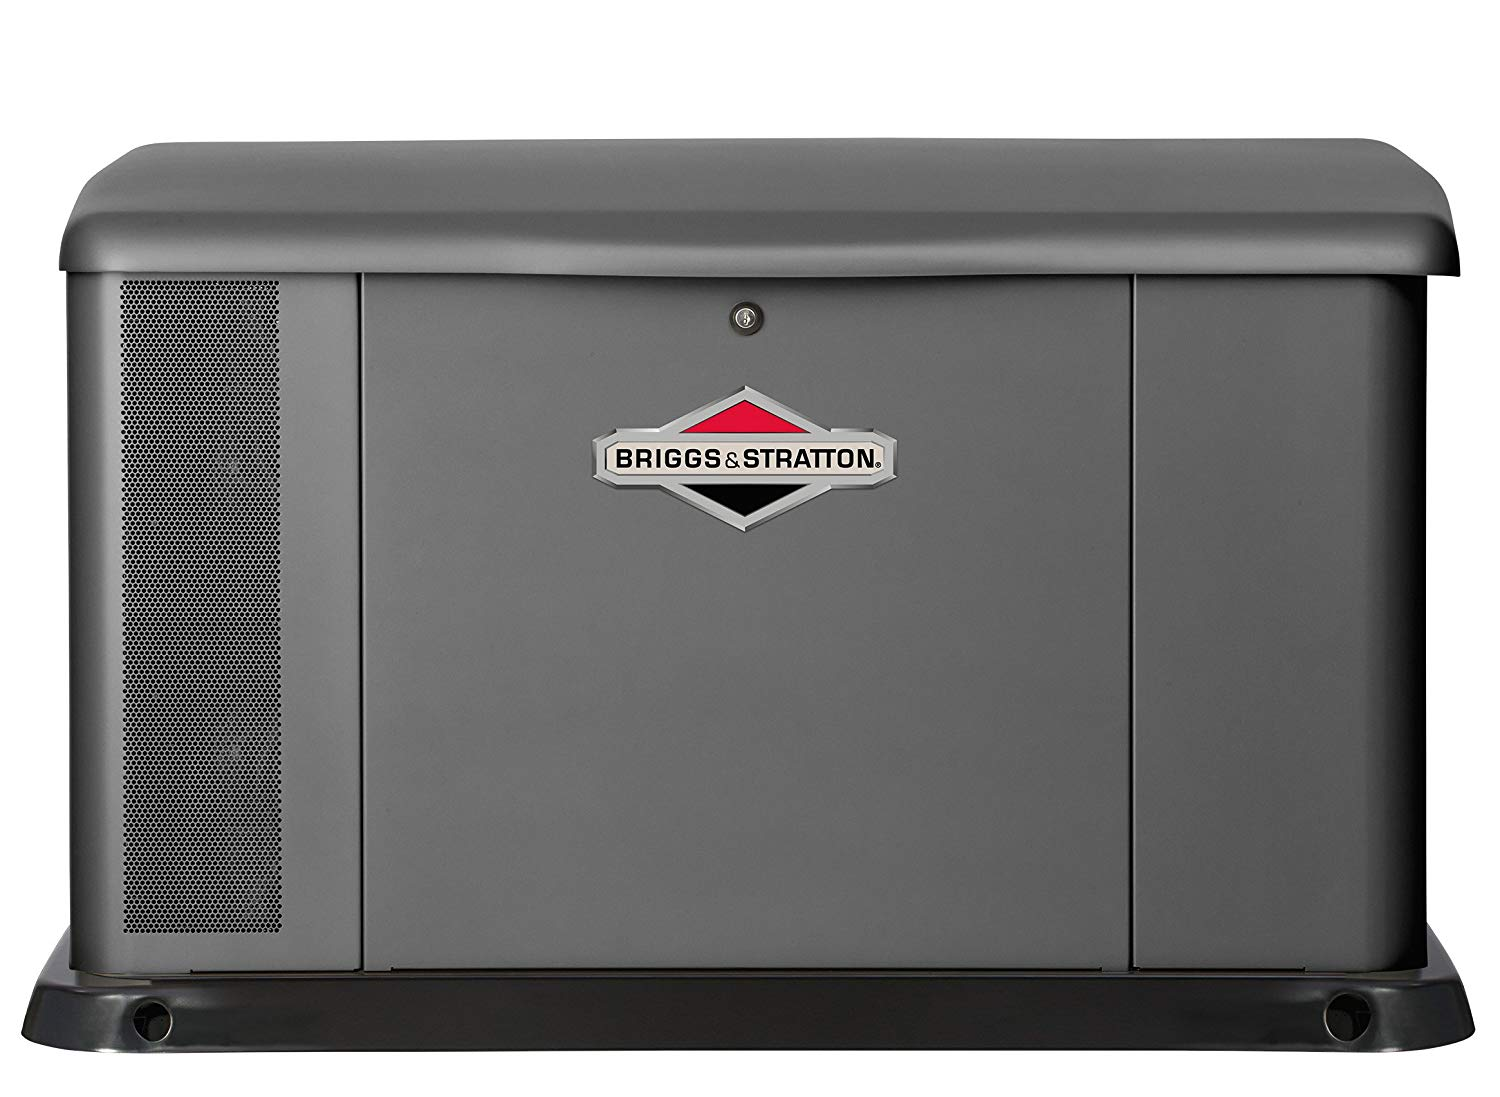 Briggs & Stratton Air Cooled Generators by LT Generators